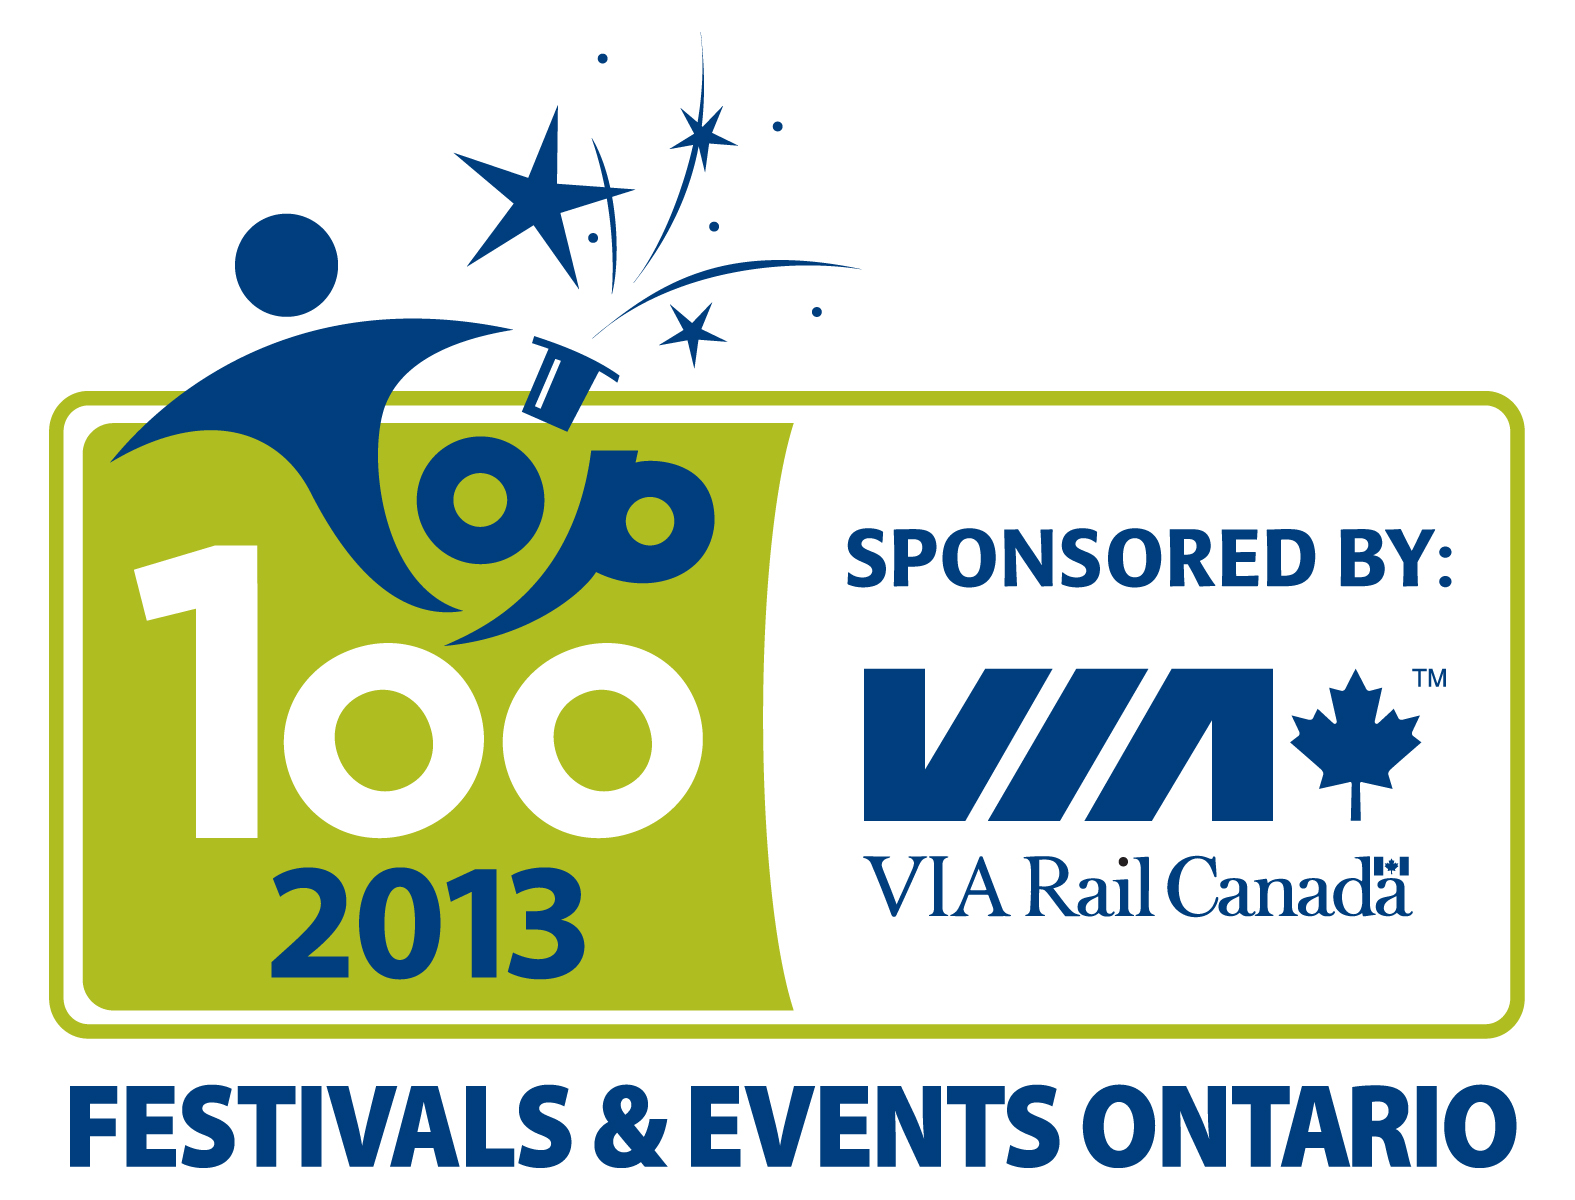 Brantford Villages Festival is in Ontario's Top 100 Festival List